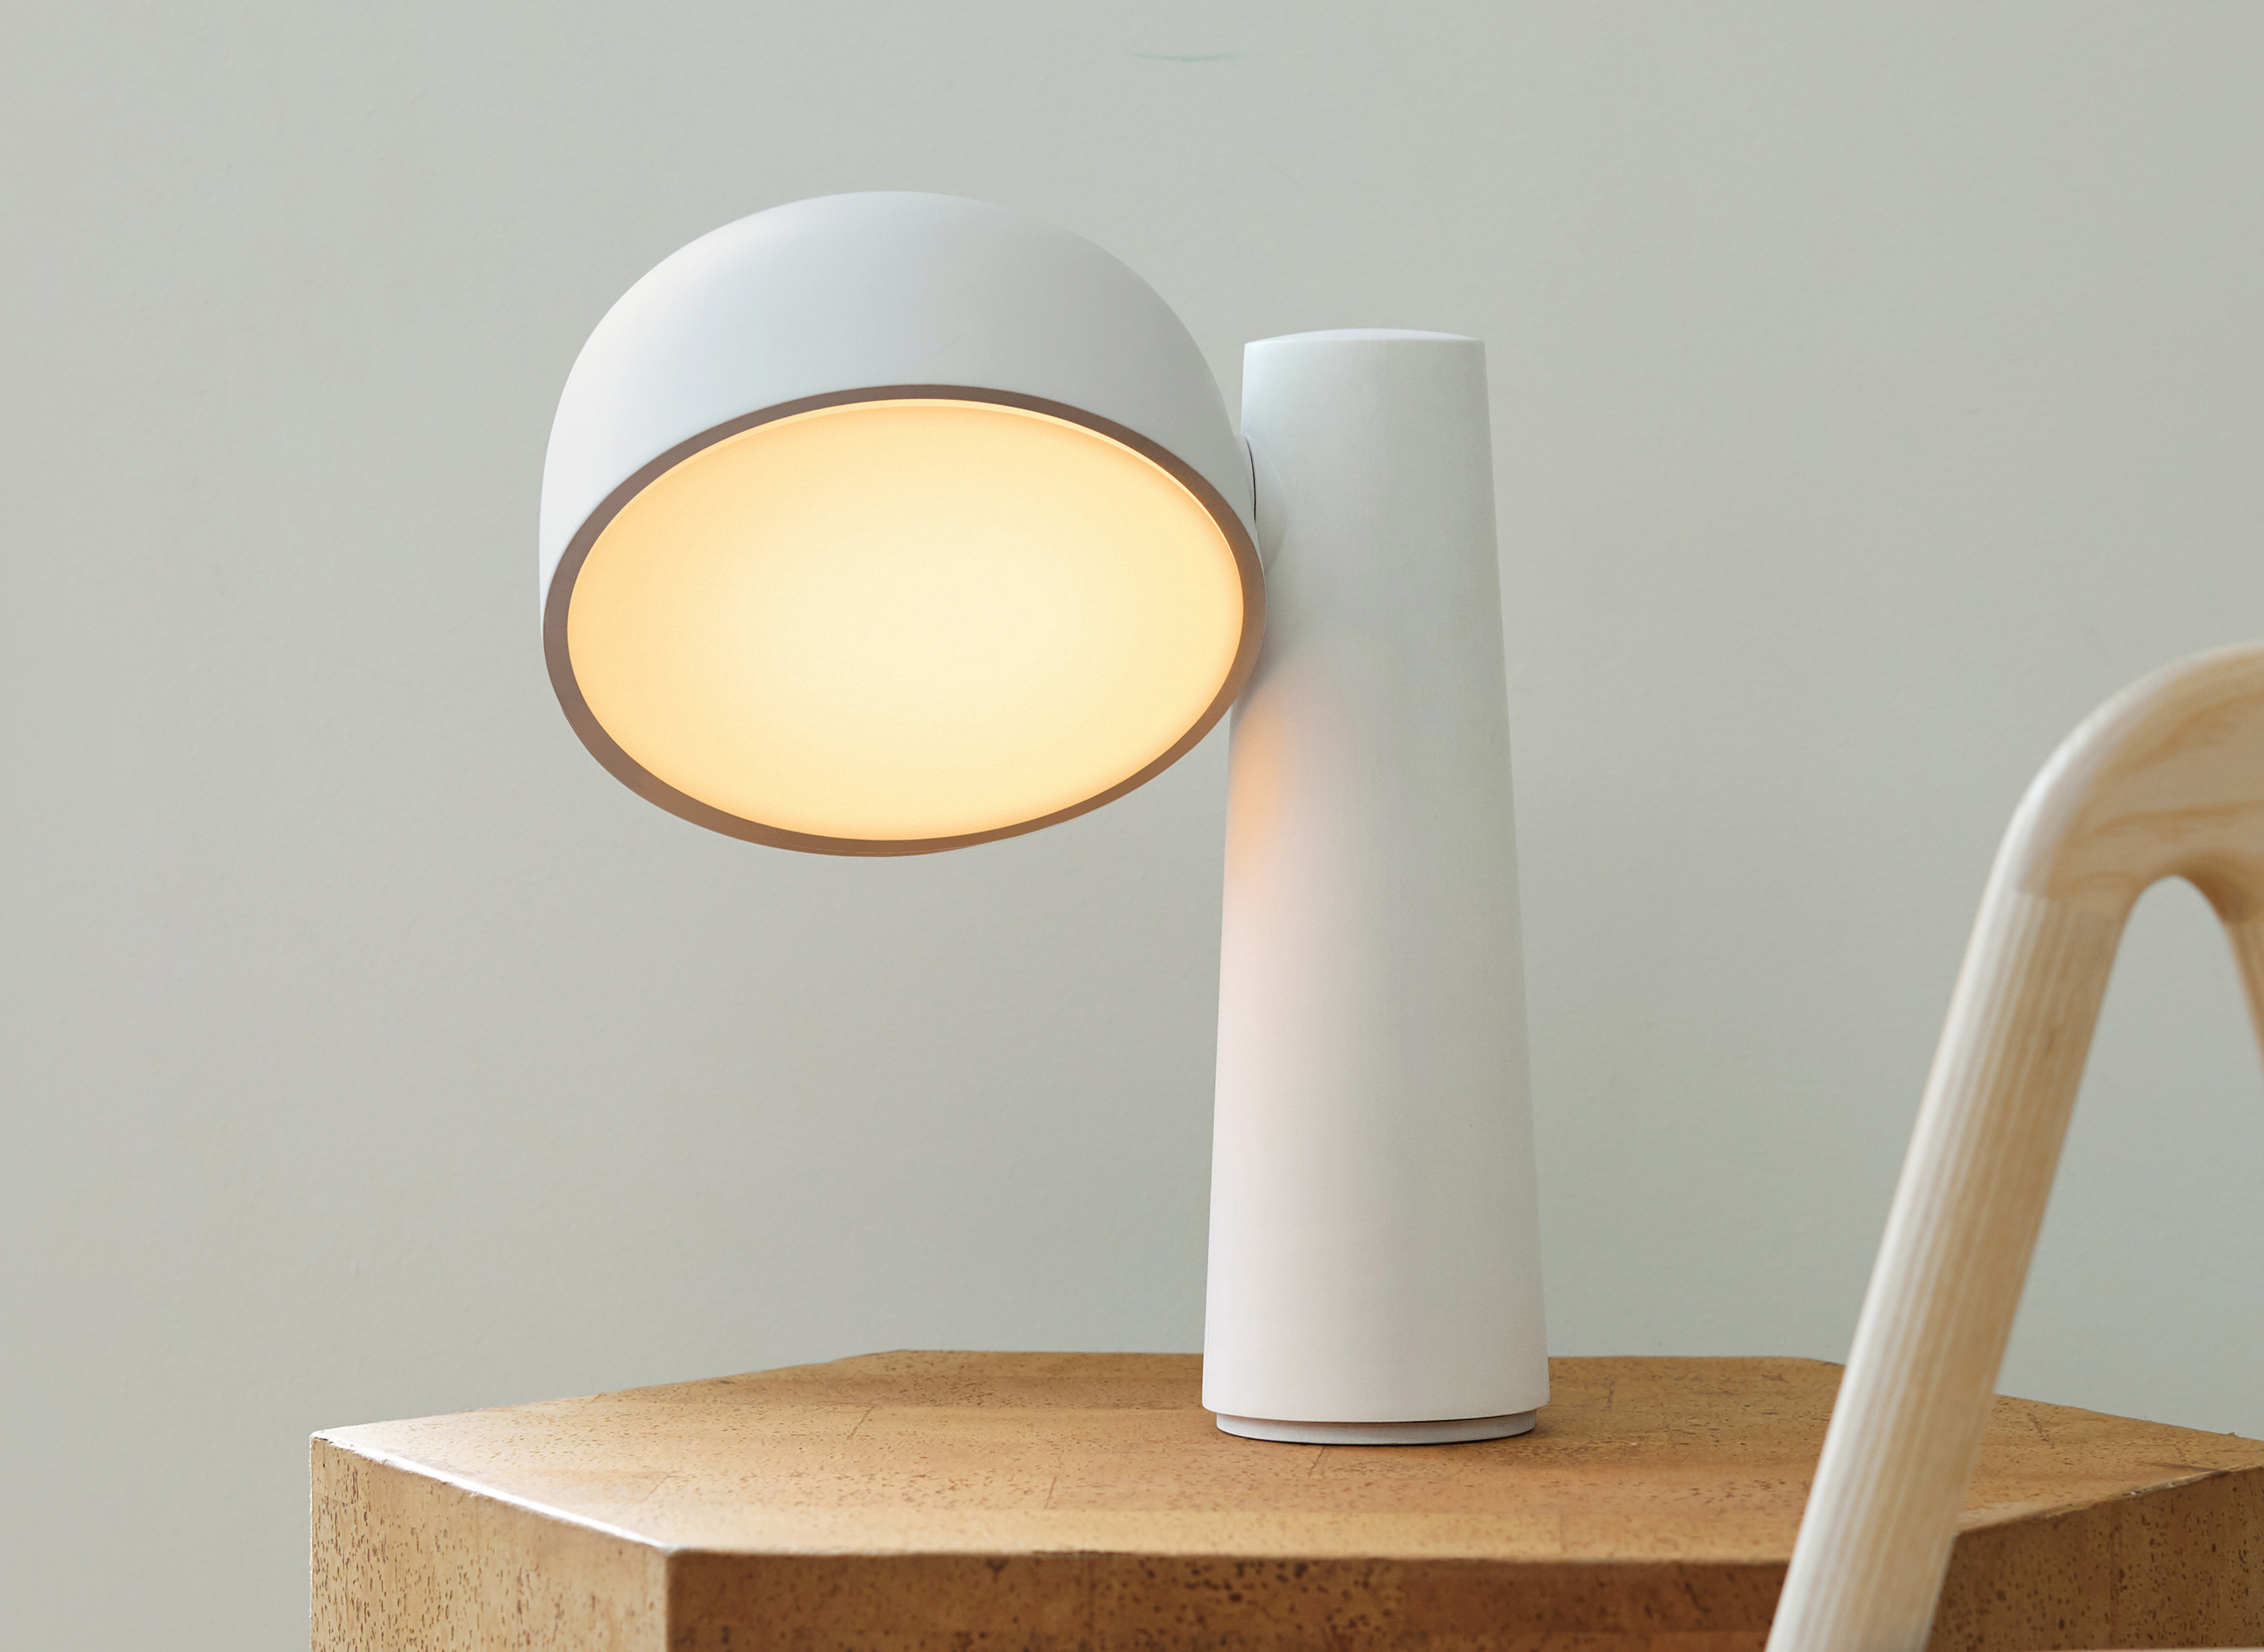 Rounded white table light.